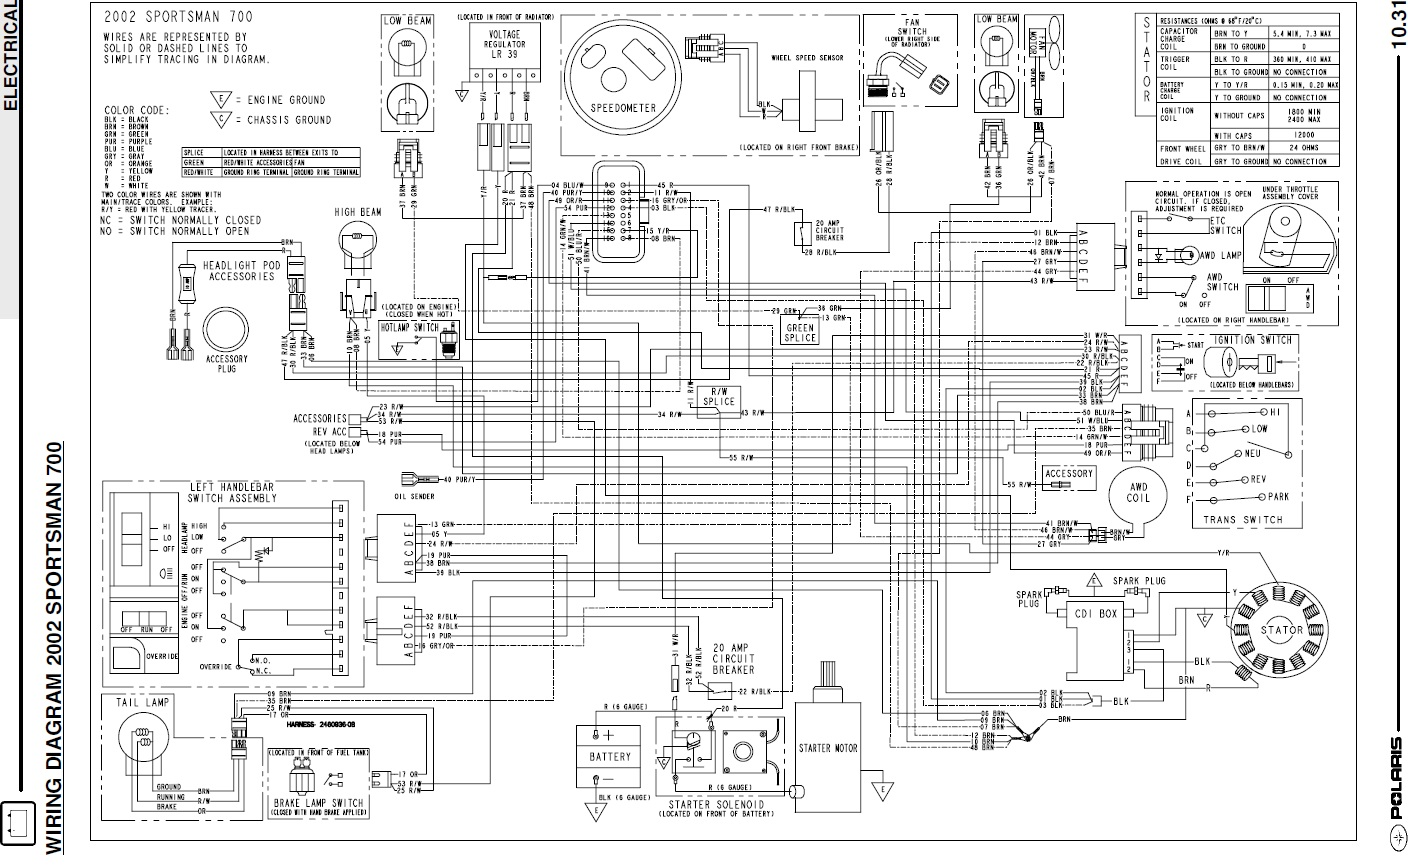 1171b9 550 Iq Shift 136 2012 Fuse Box Diagram Wiring Library